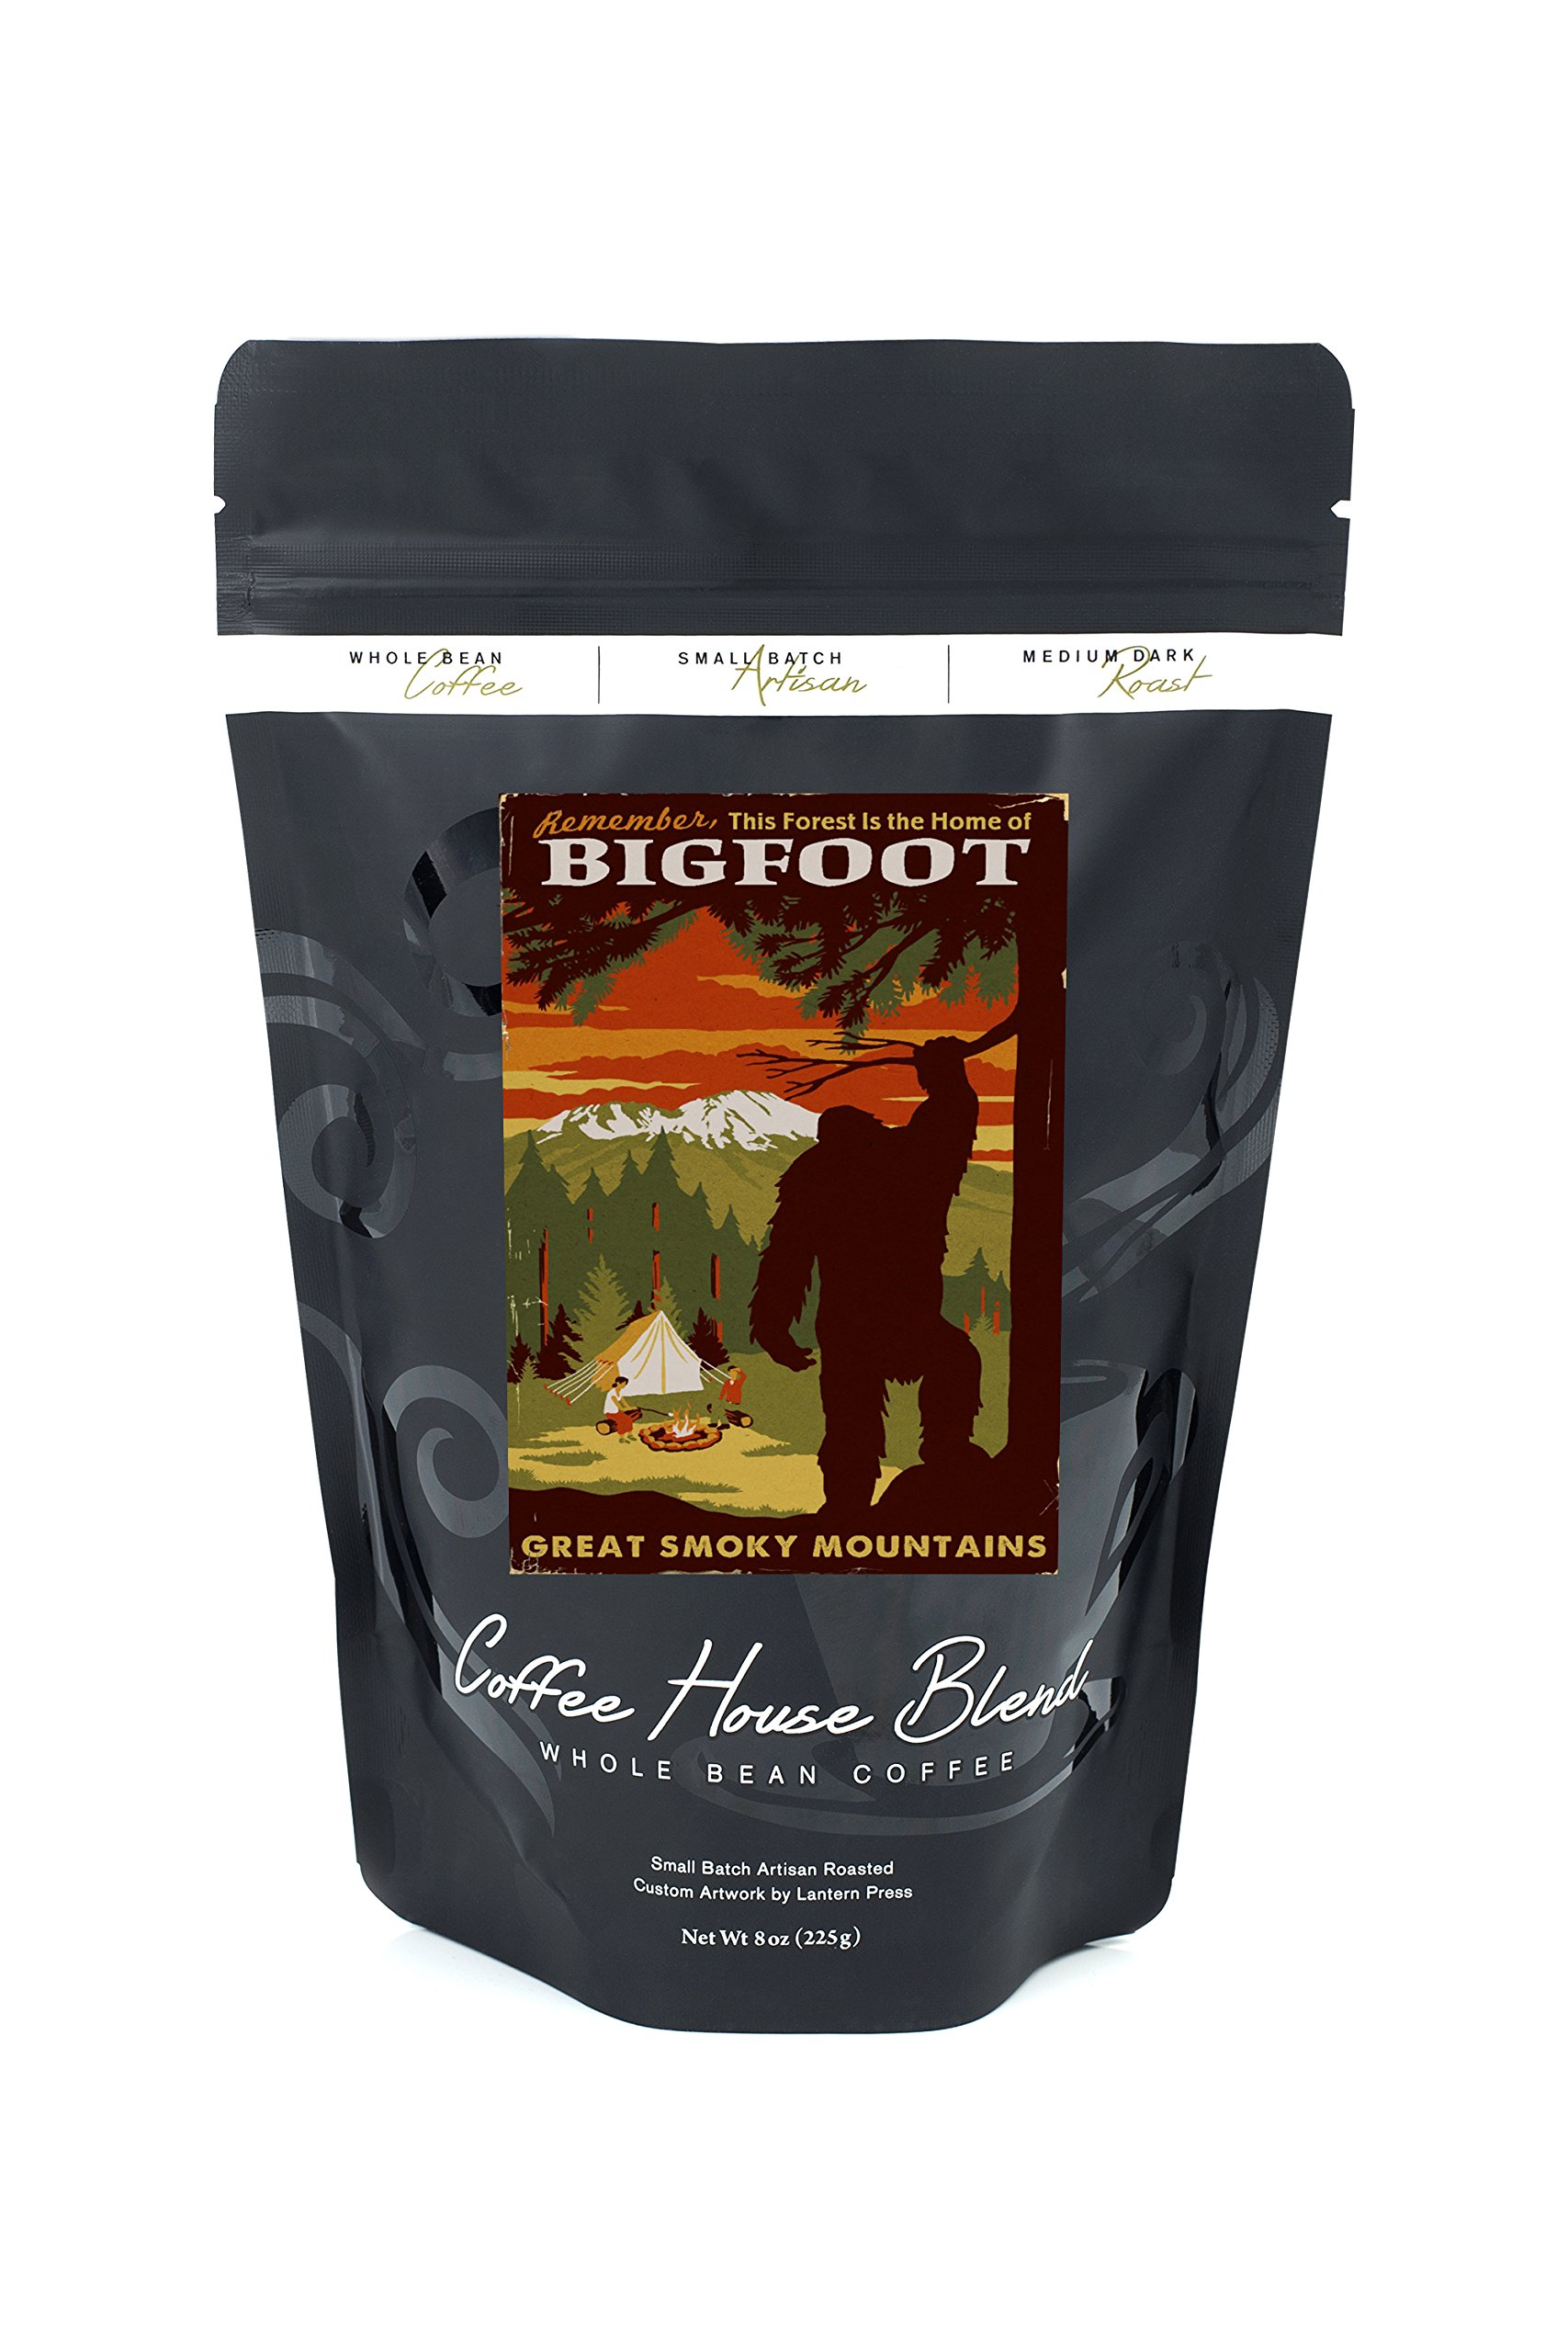 Great Smoky Mountains, Tennessee - Home of Bigfoot (8oz Whole Bean Small Batch Artisan Coffee - Bold & Strong Medium Dark Roast w/ Artwork)